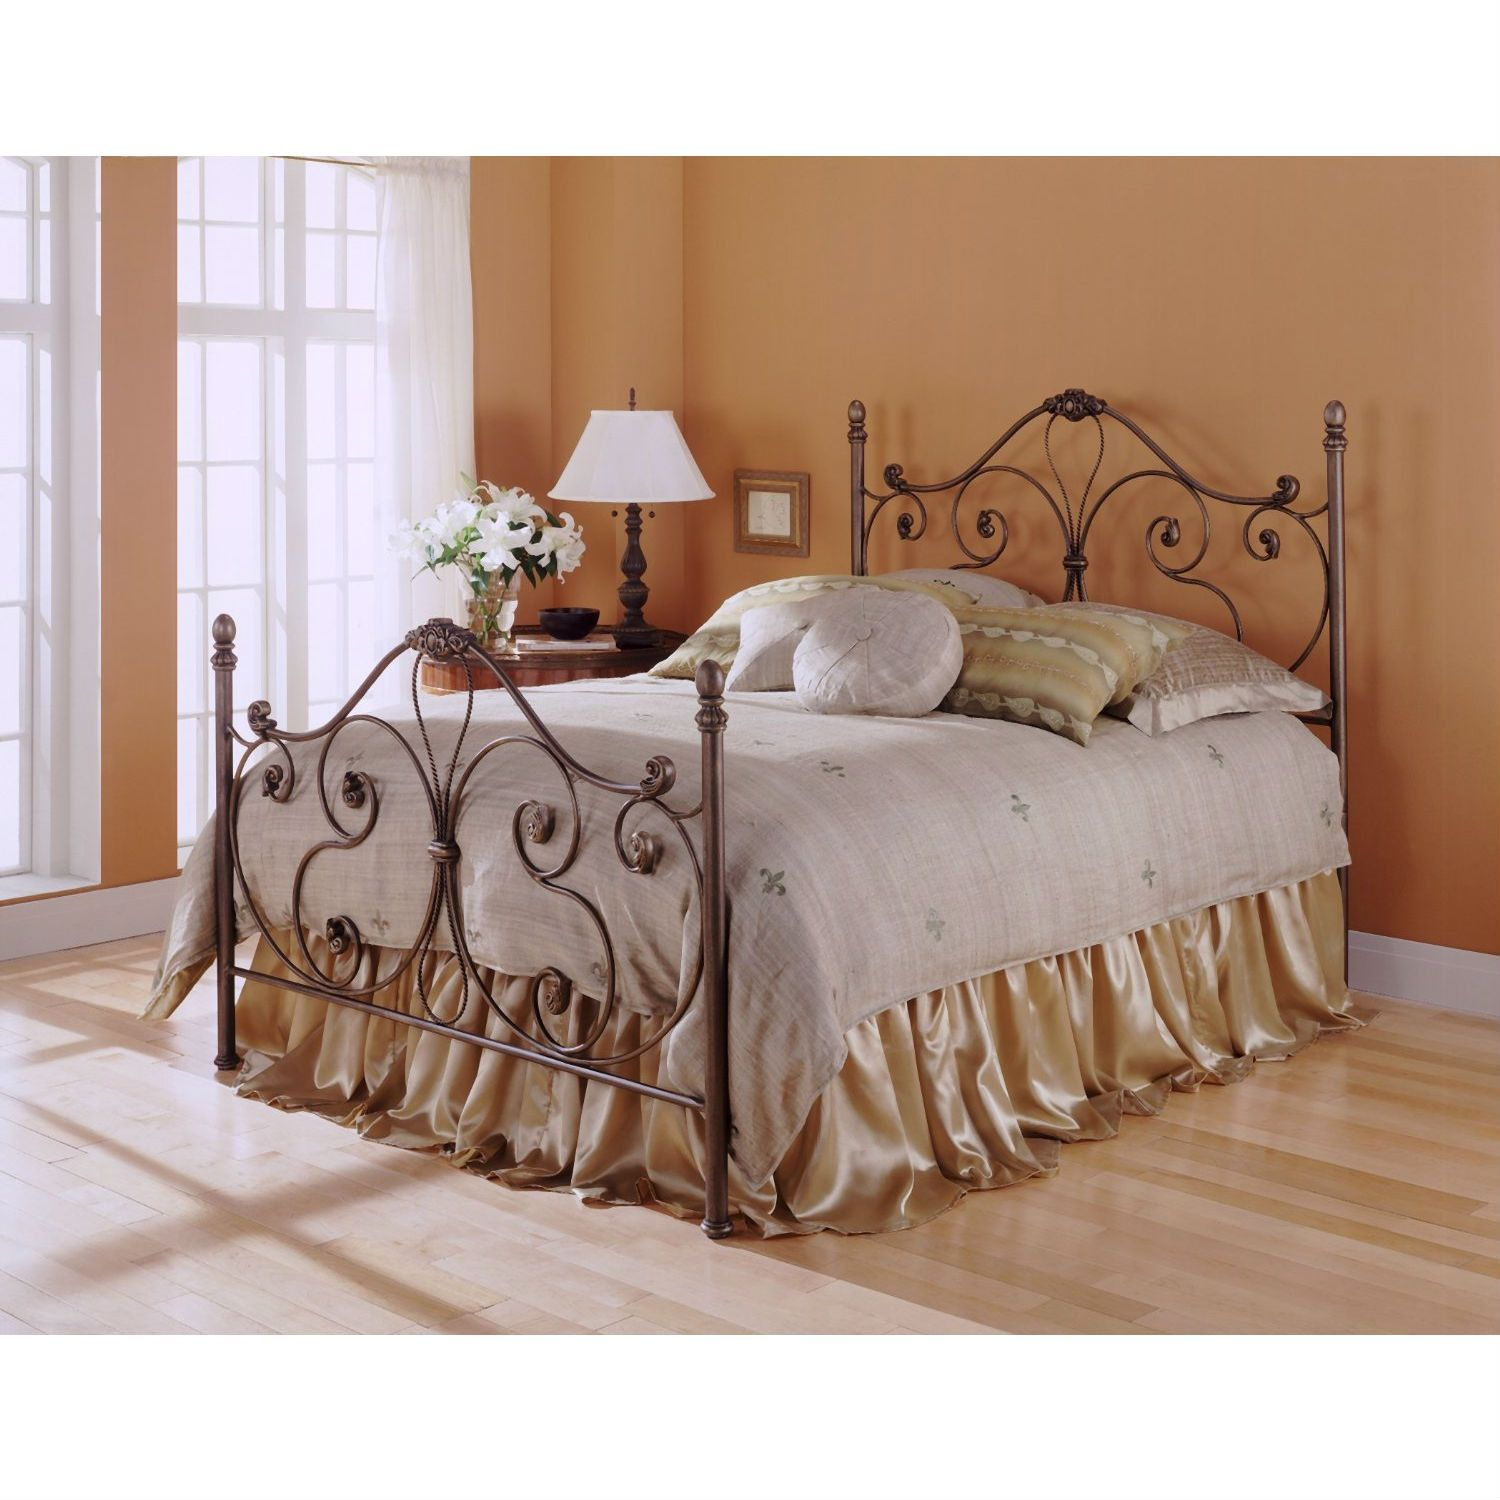 Queen Size Metal Bed With Headboard And Footboard In Majestic